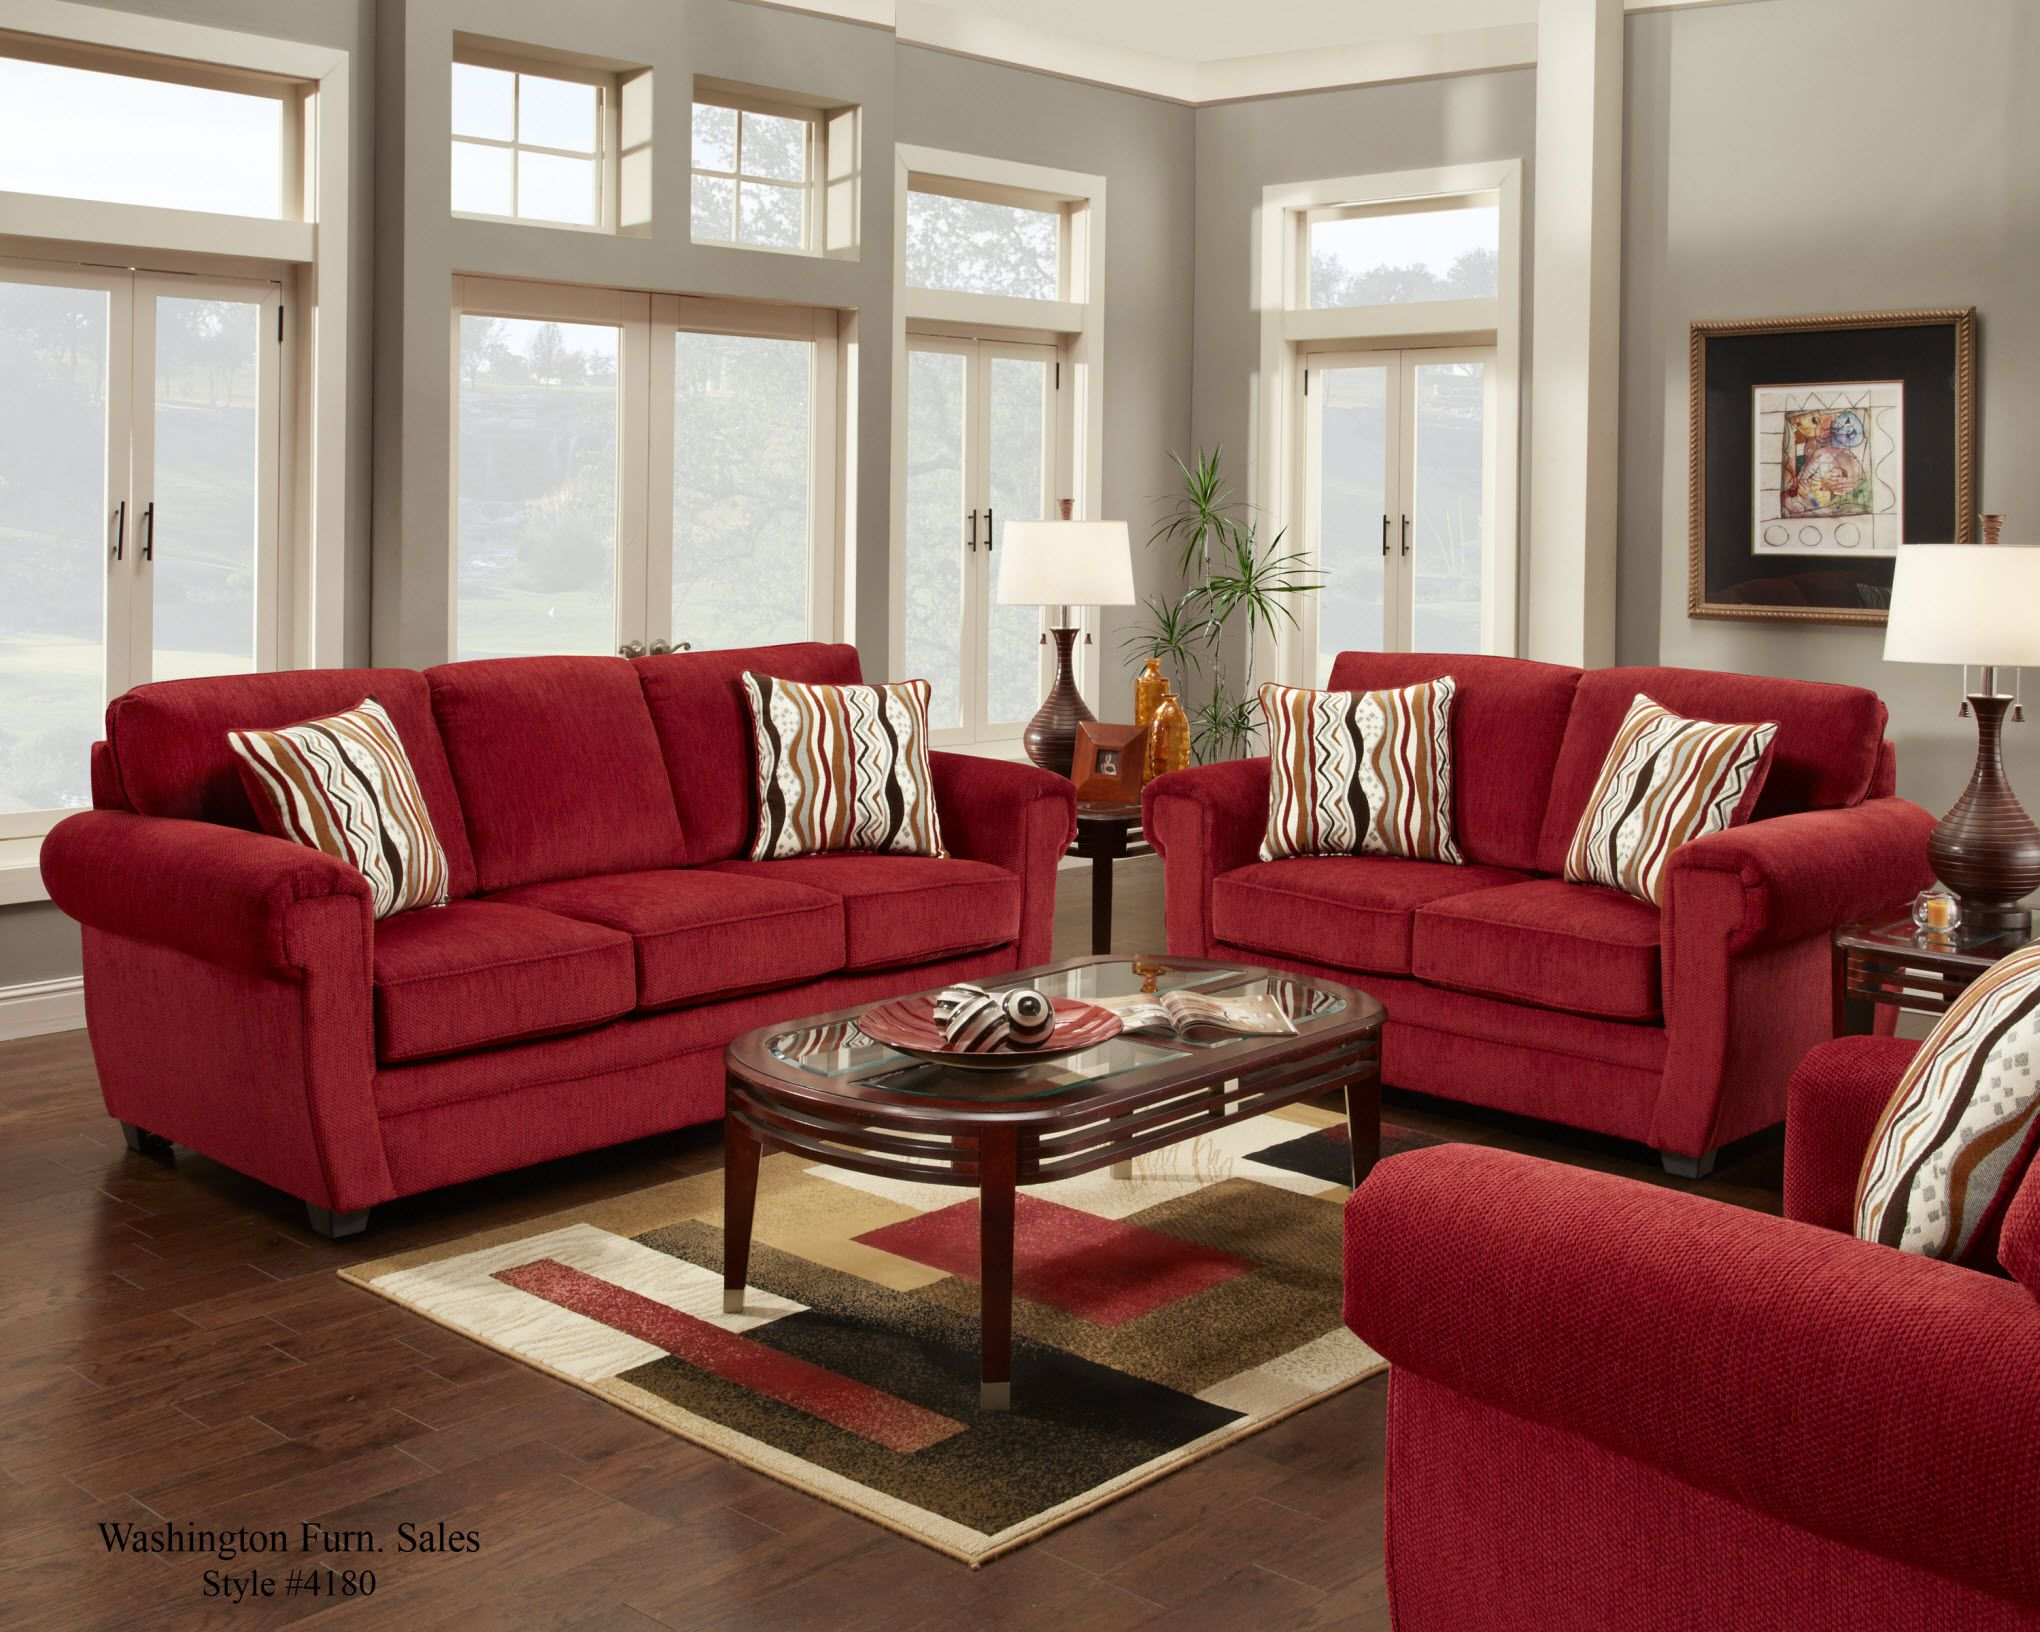 4180 washington samson red sofa and loveseat www for Sitting room sofa designs